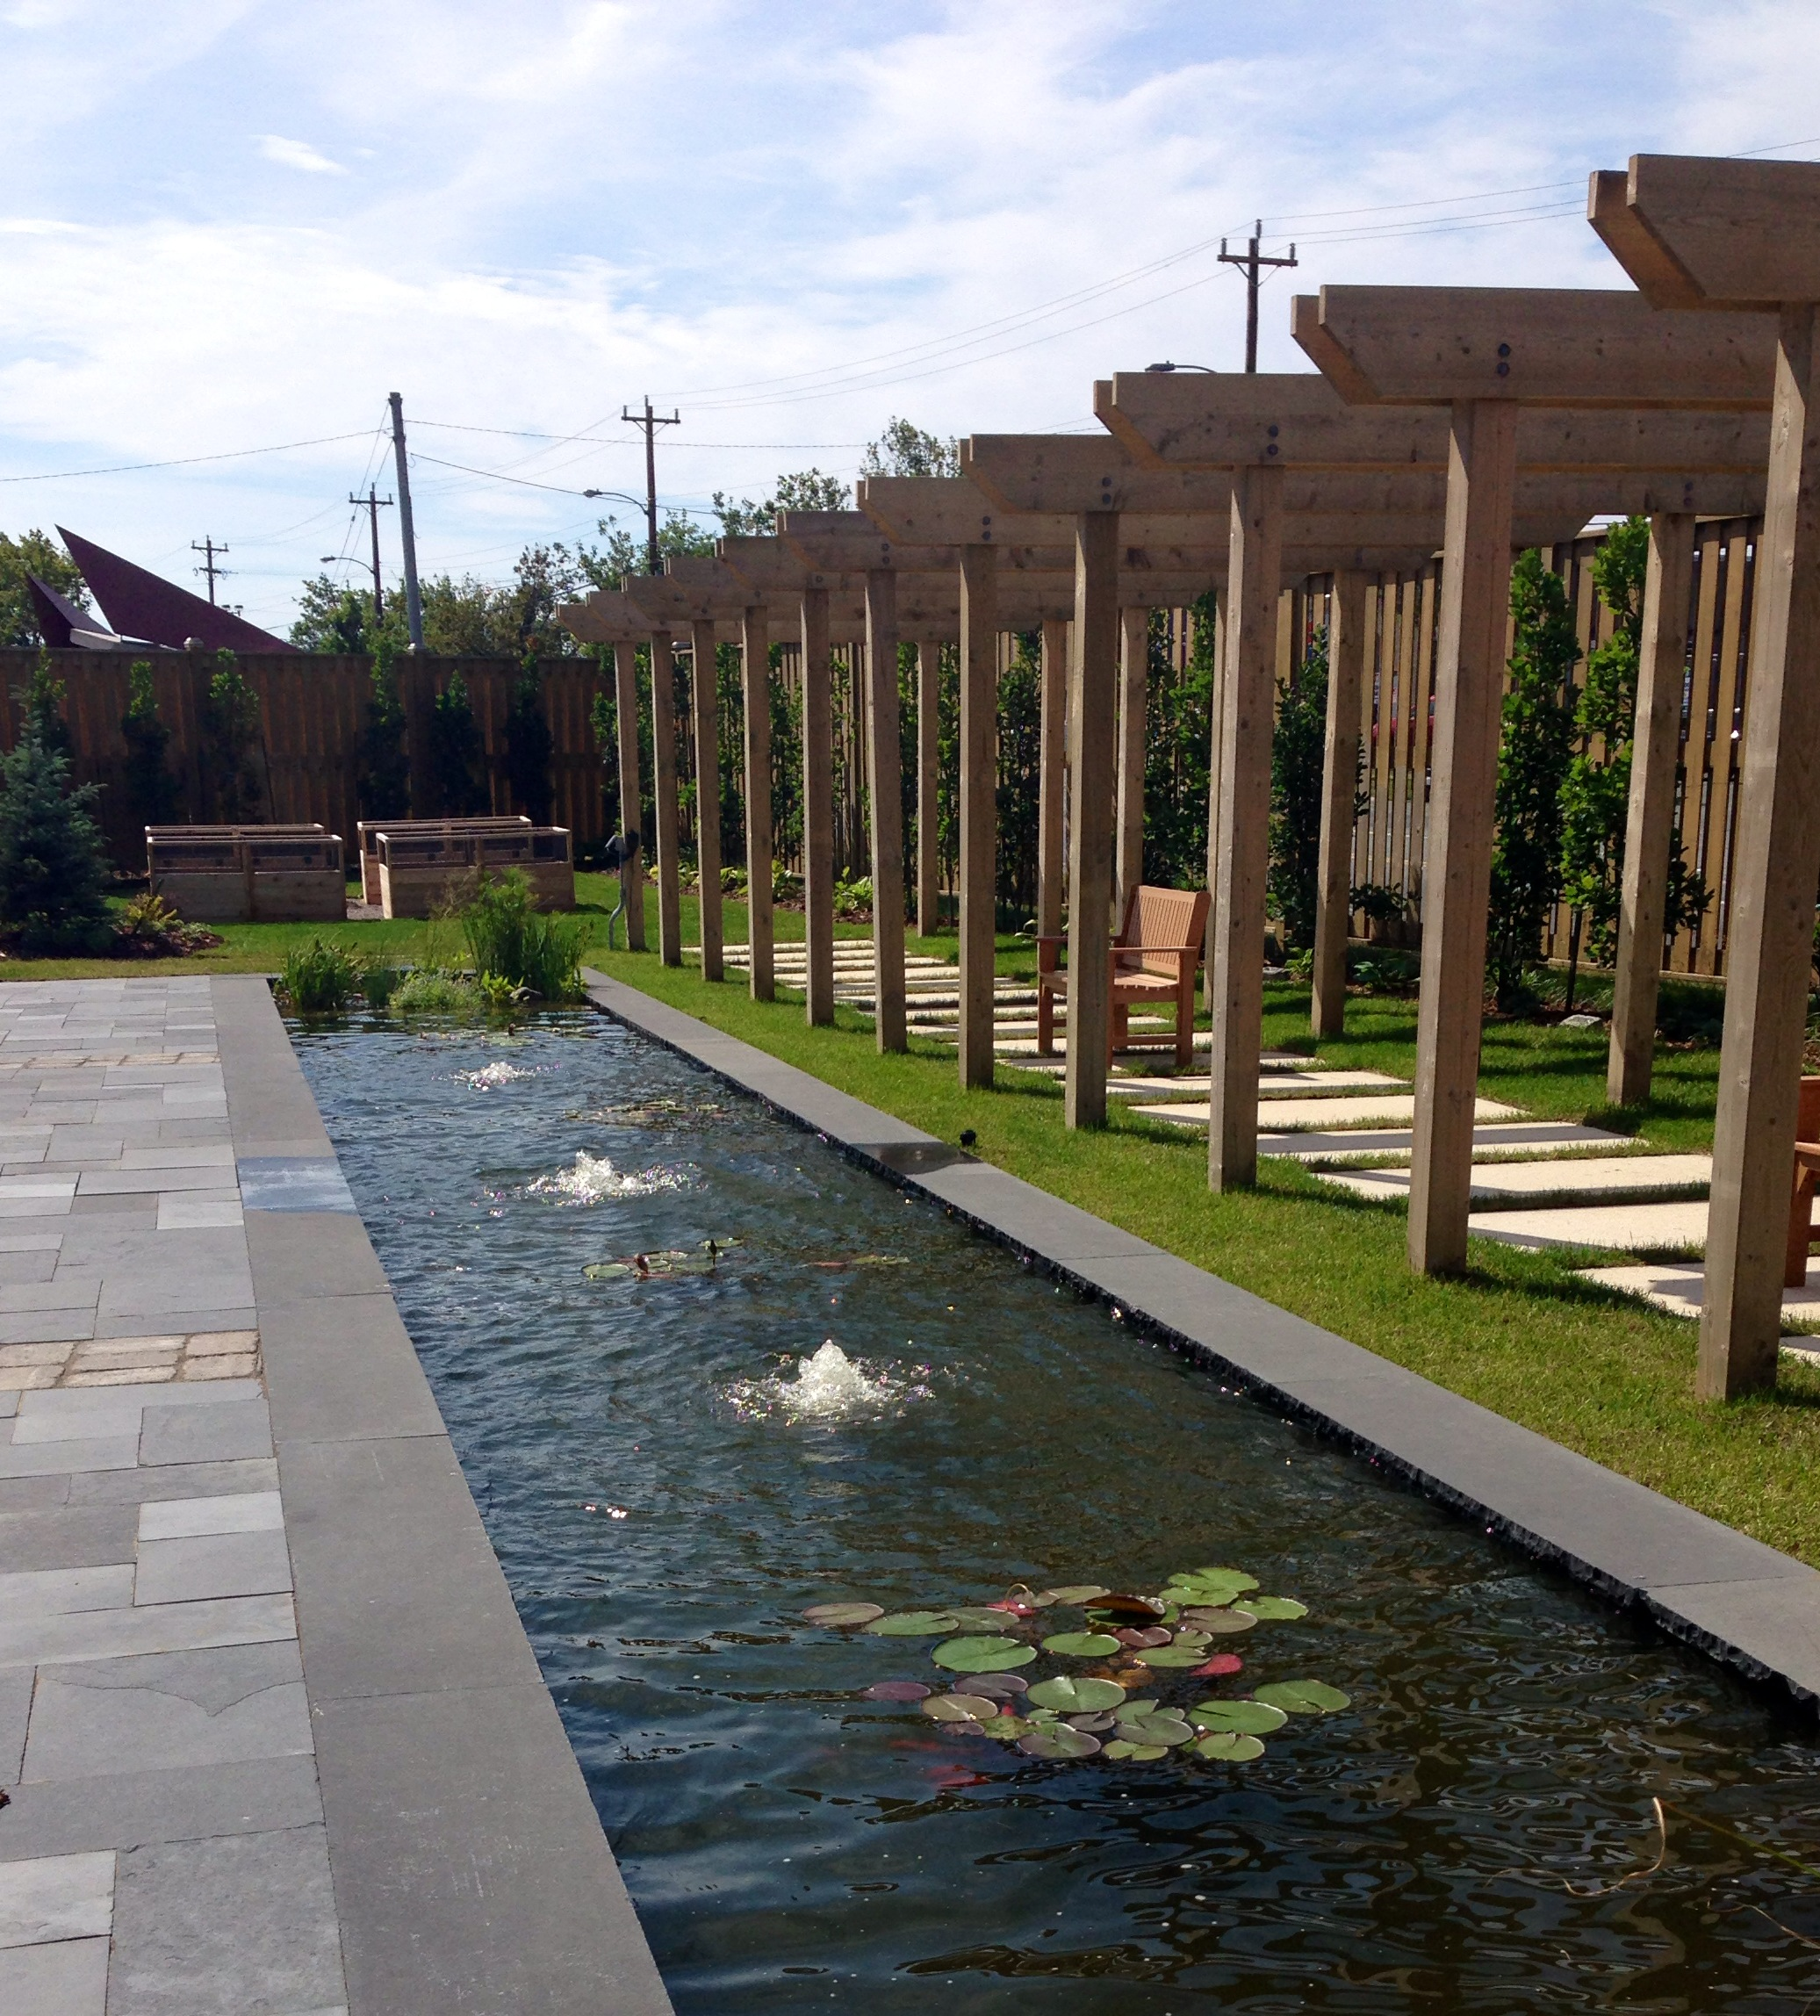 Pond with fountains, lilies and accessible vegetable gardens in background.jpg